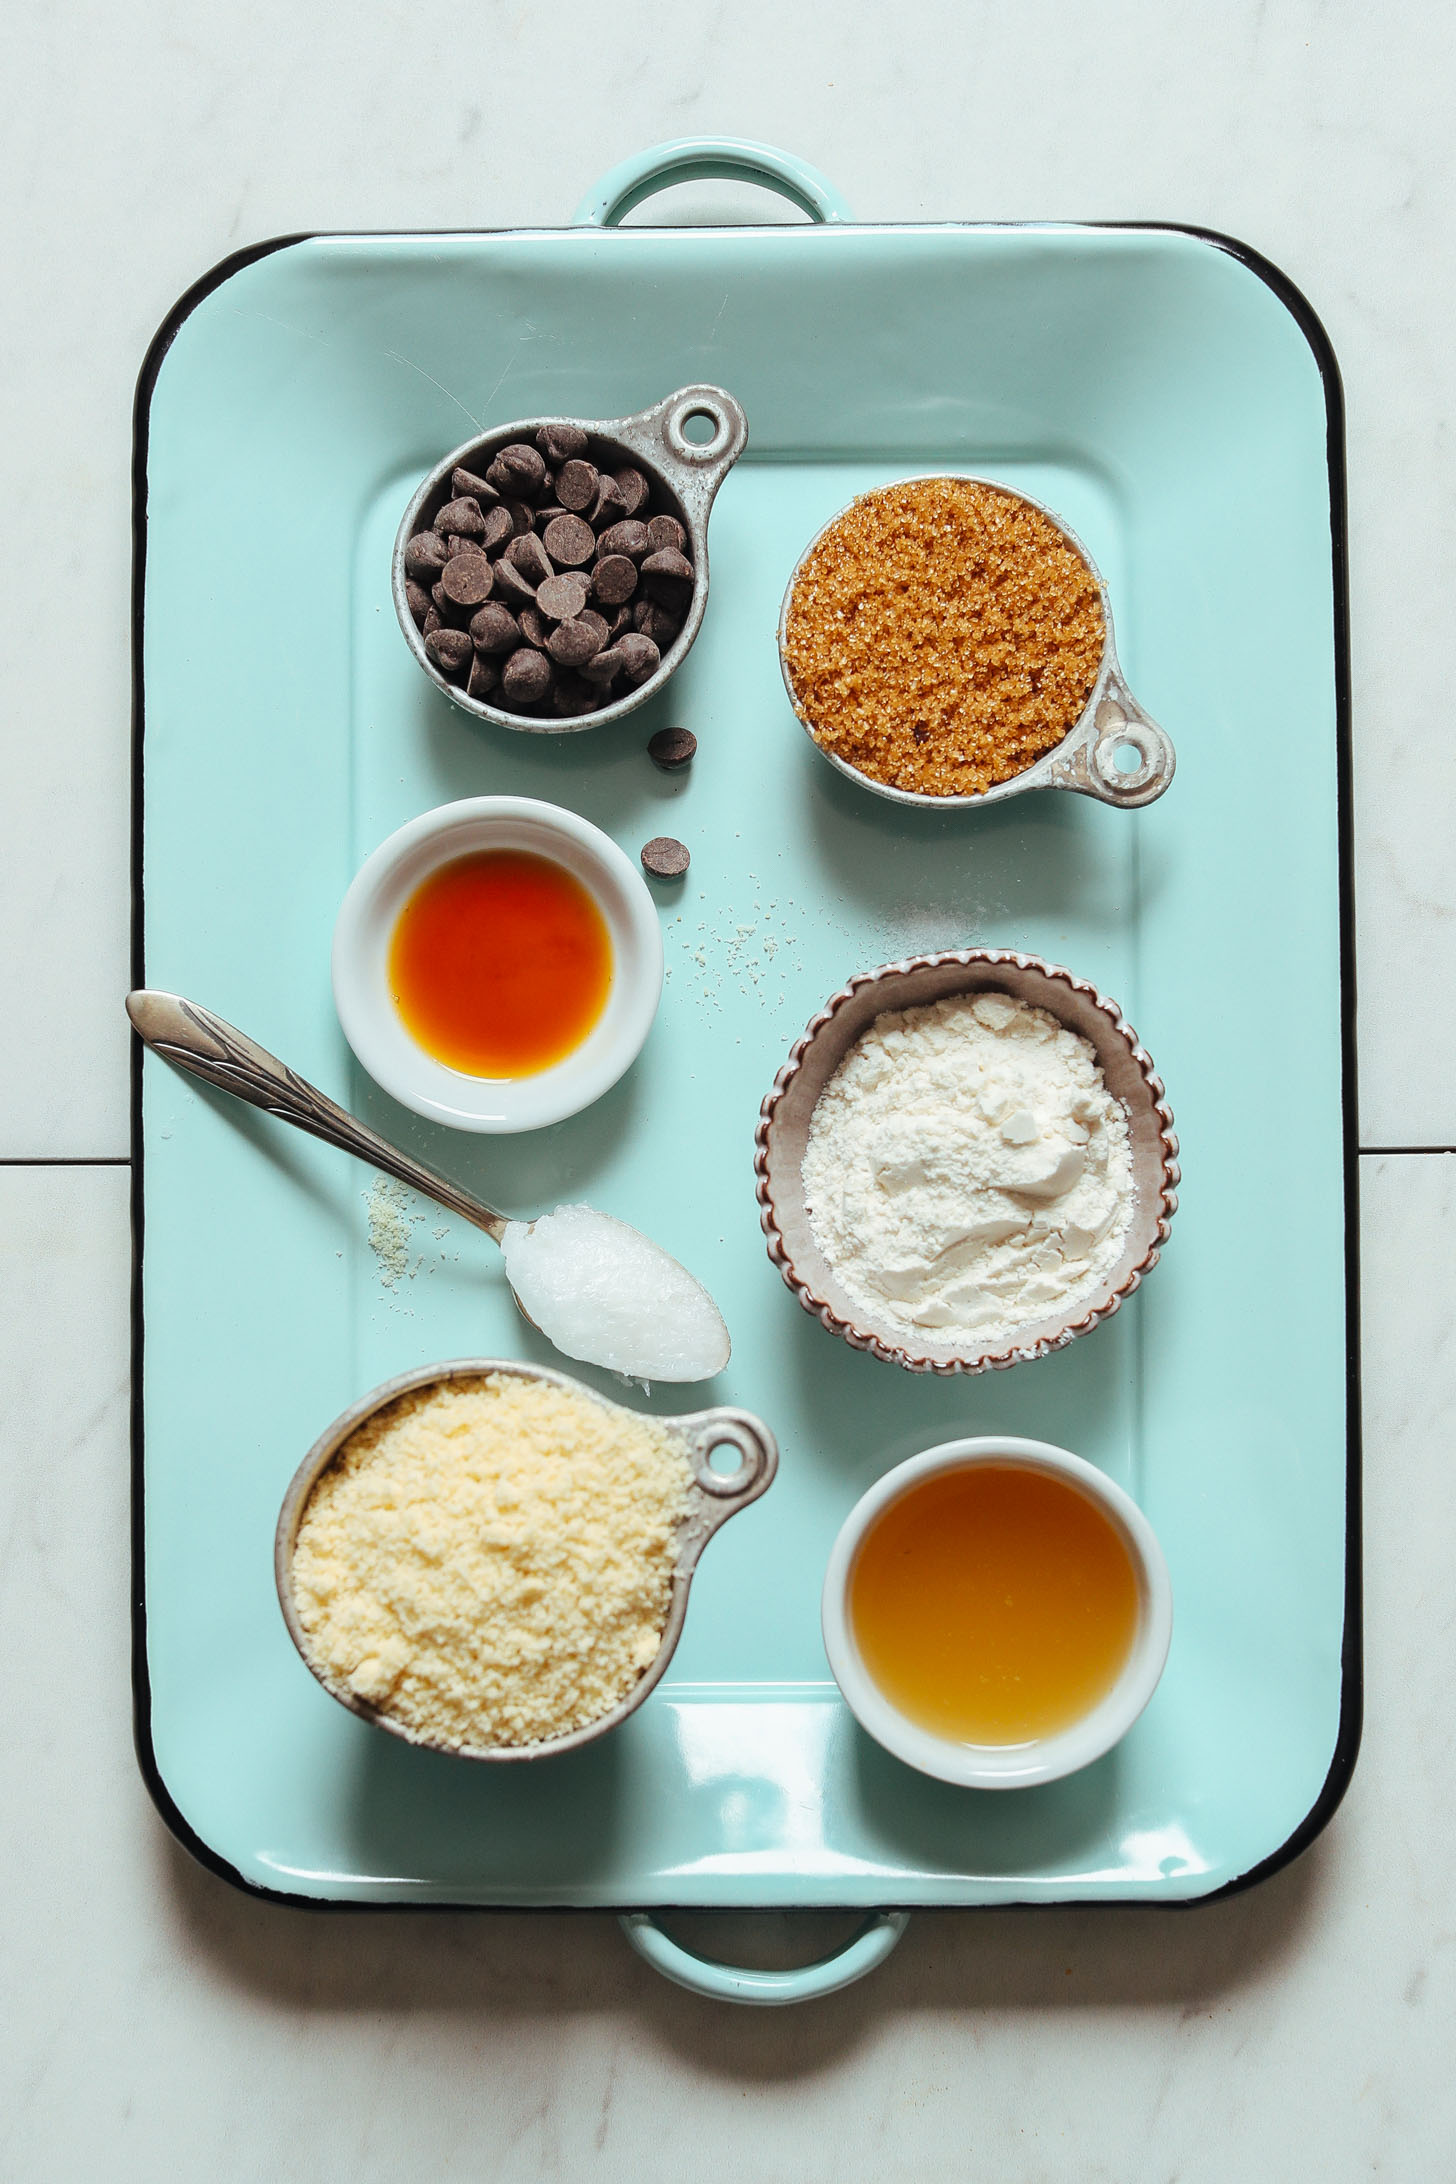 Blue tray displaying almond flour and other ingredients for making vegan gluten-free chocolate chip cookies